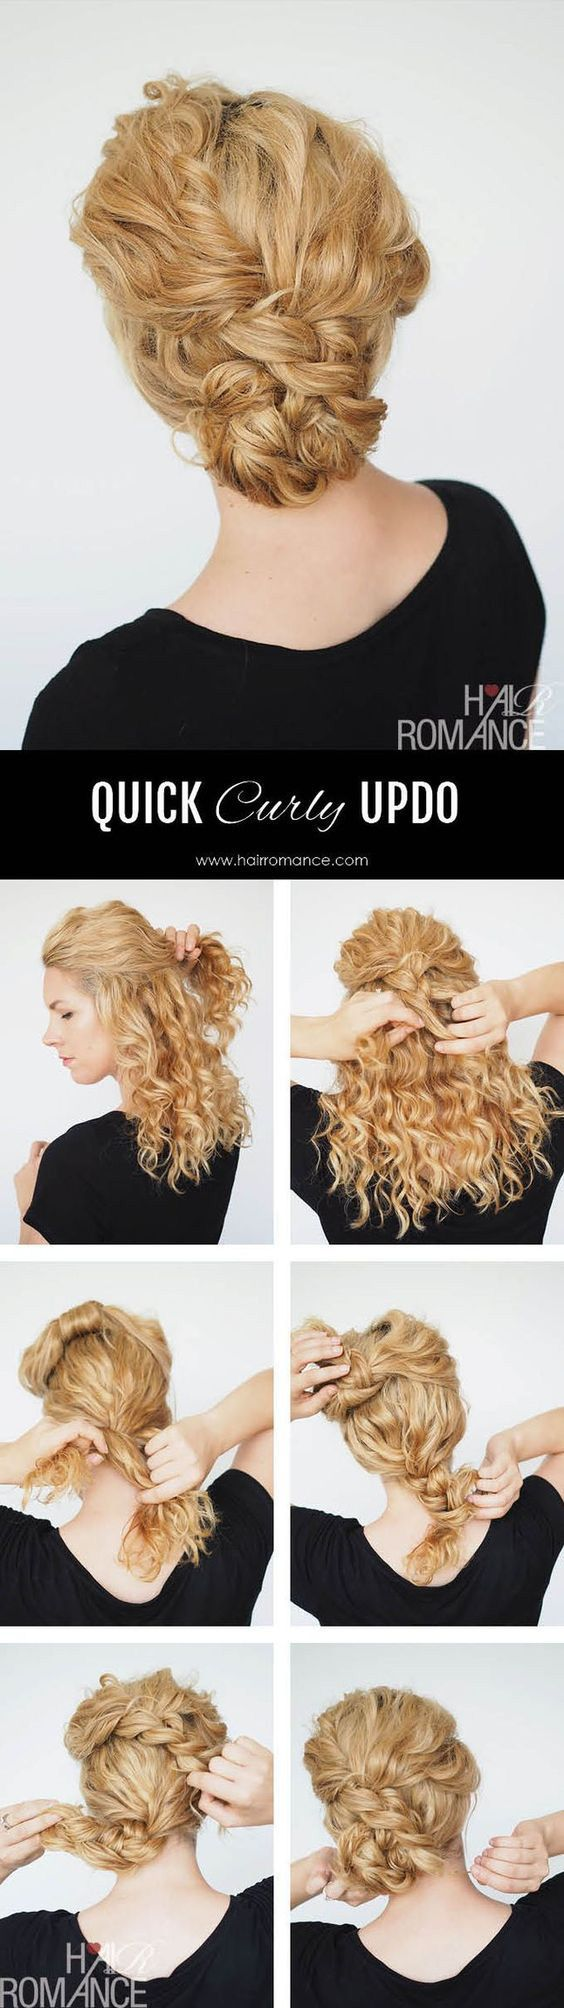 best curly up do images on pinterest